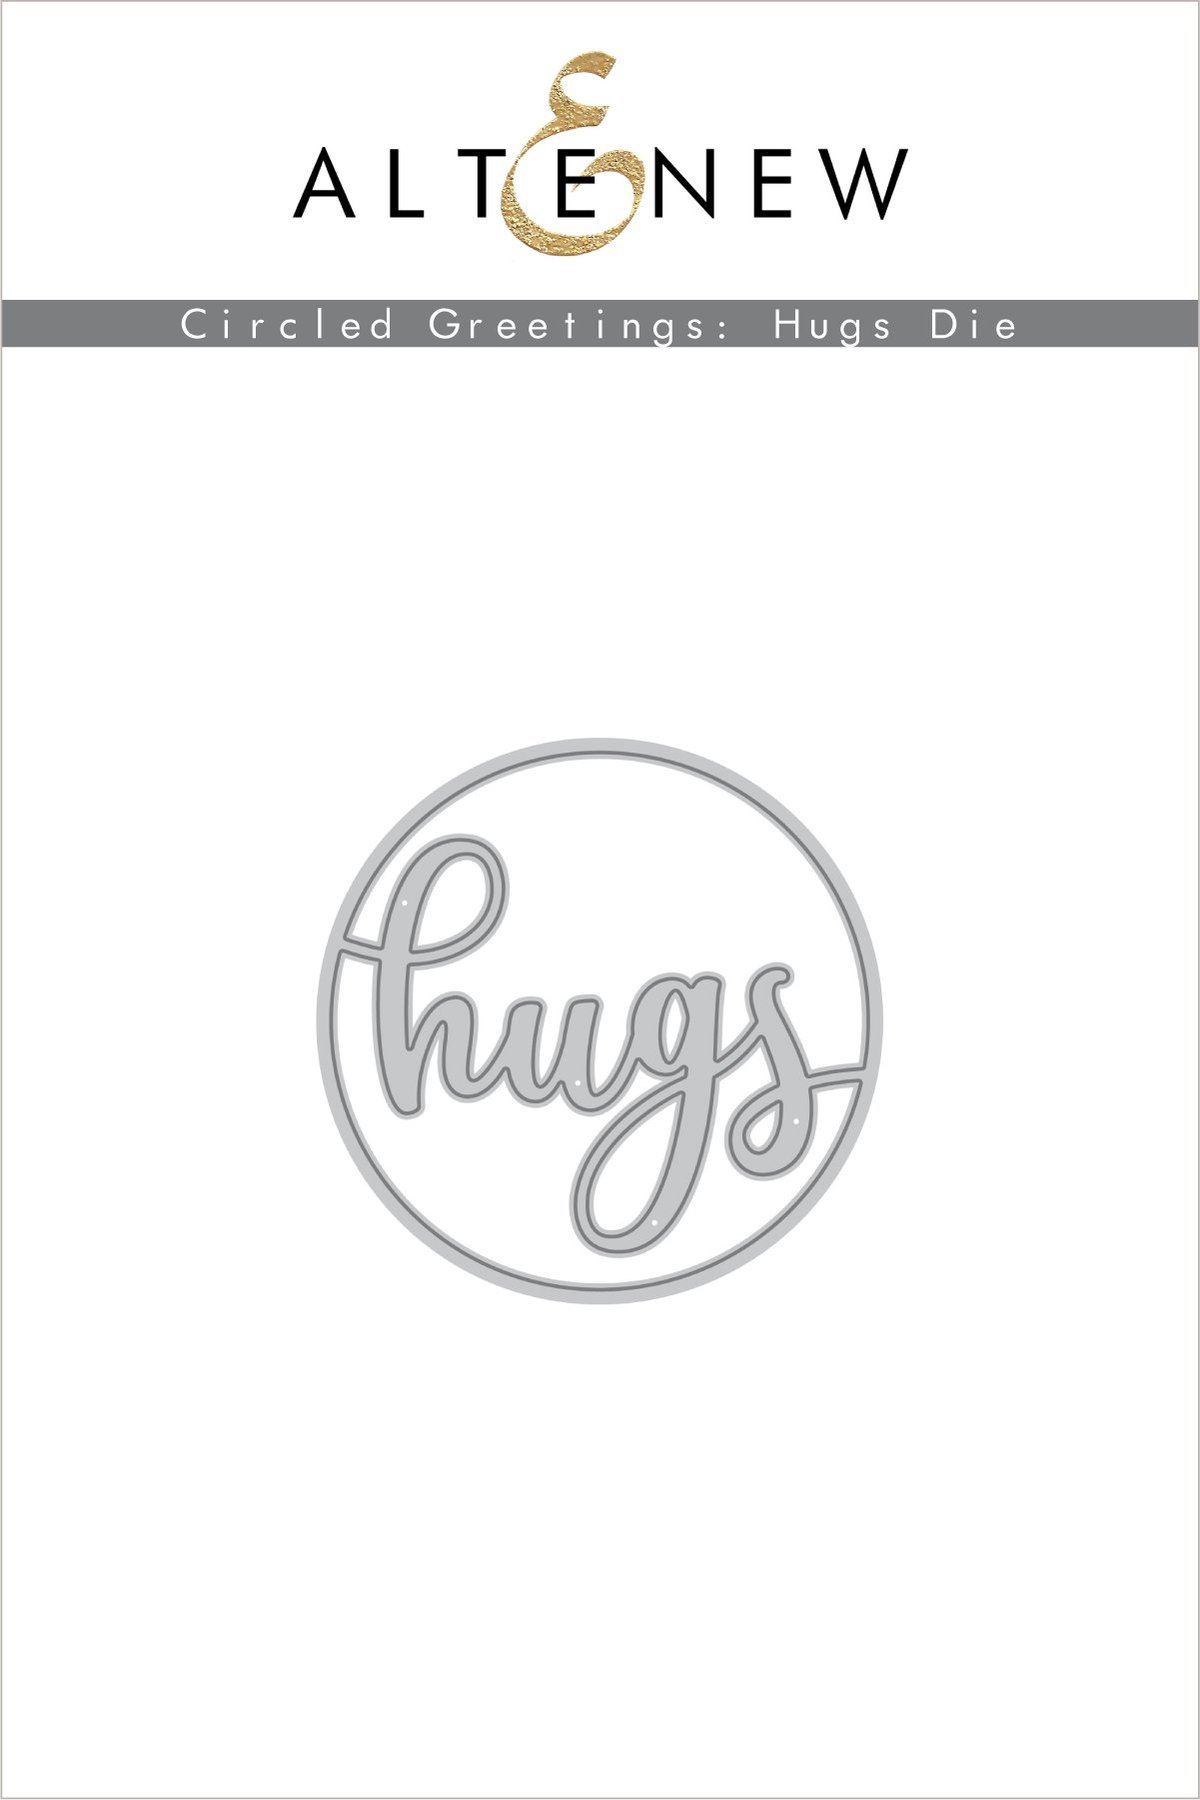 *NEW* - Altenew - Circled Greetings: Hugs Die